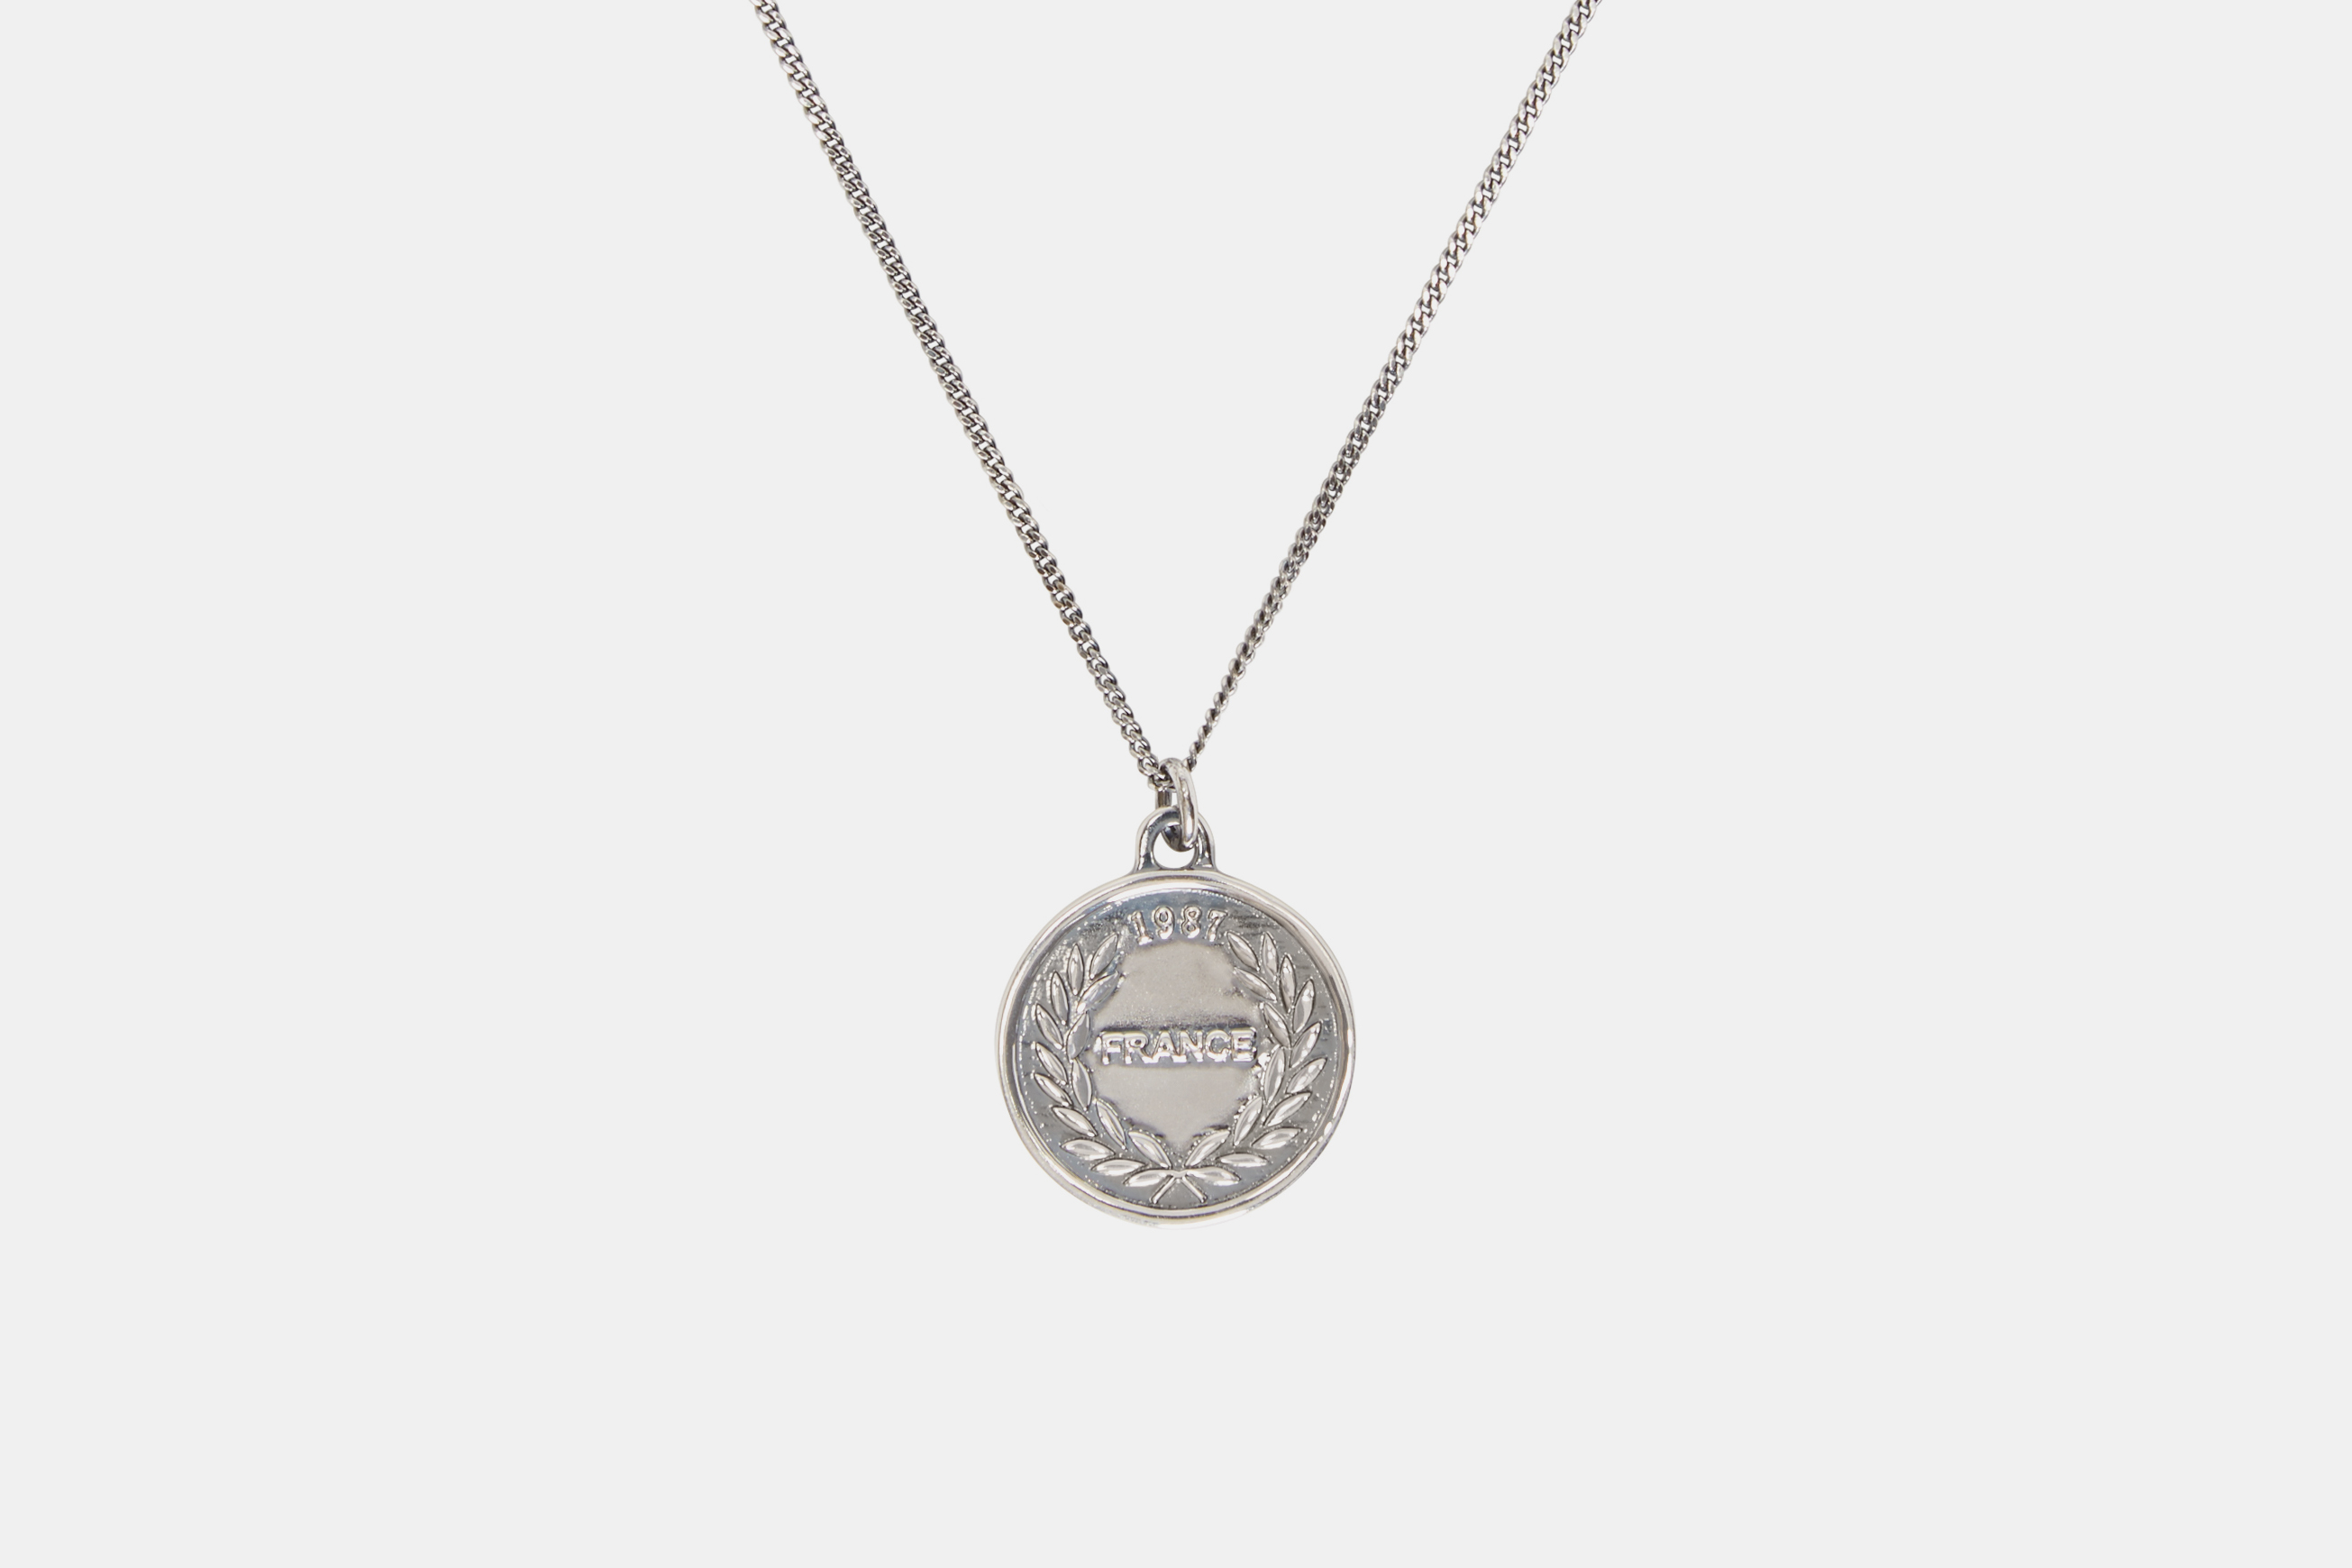 in fwrd of c a p serge apc silver necklace product image